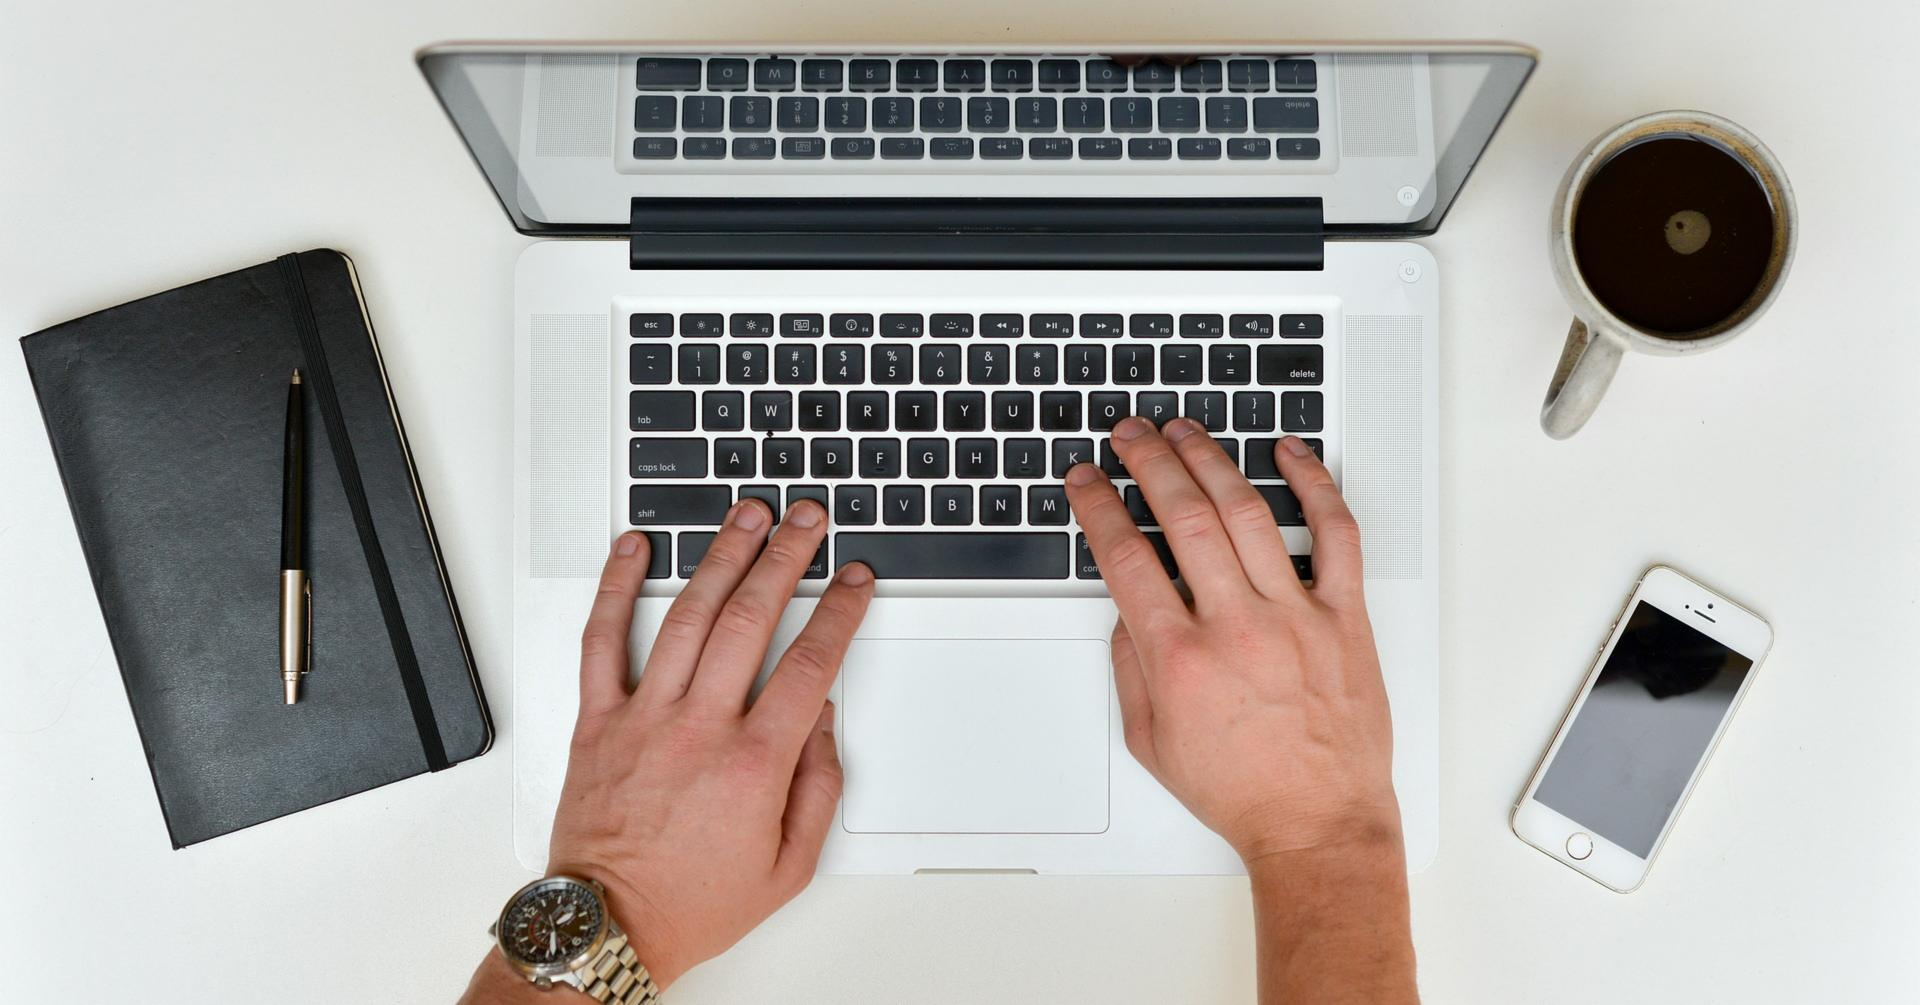 Hands writing a business proposal on a laptop